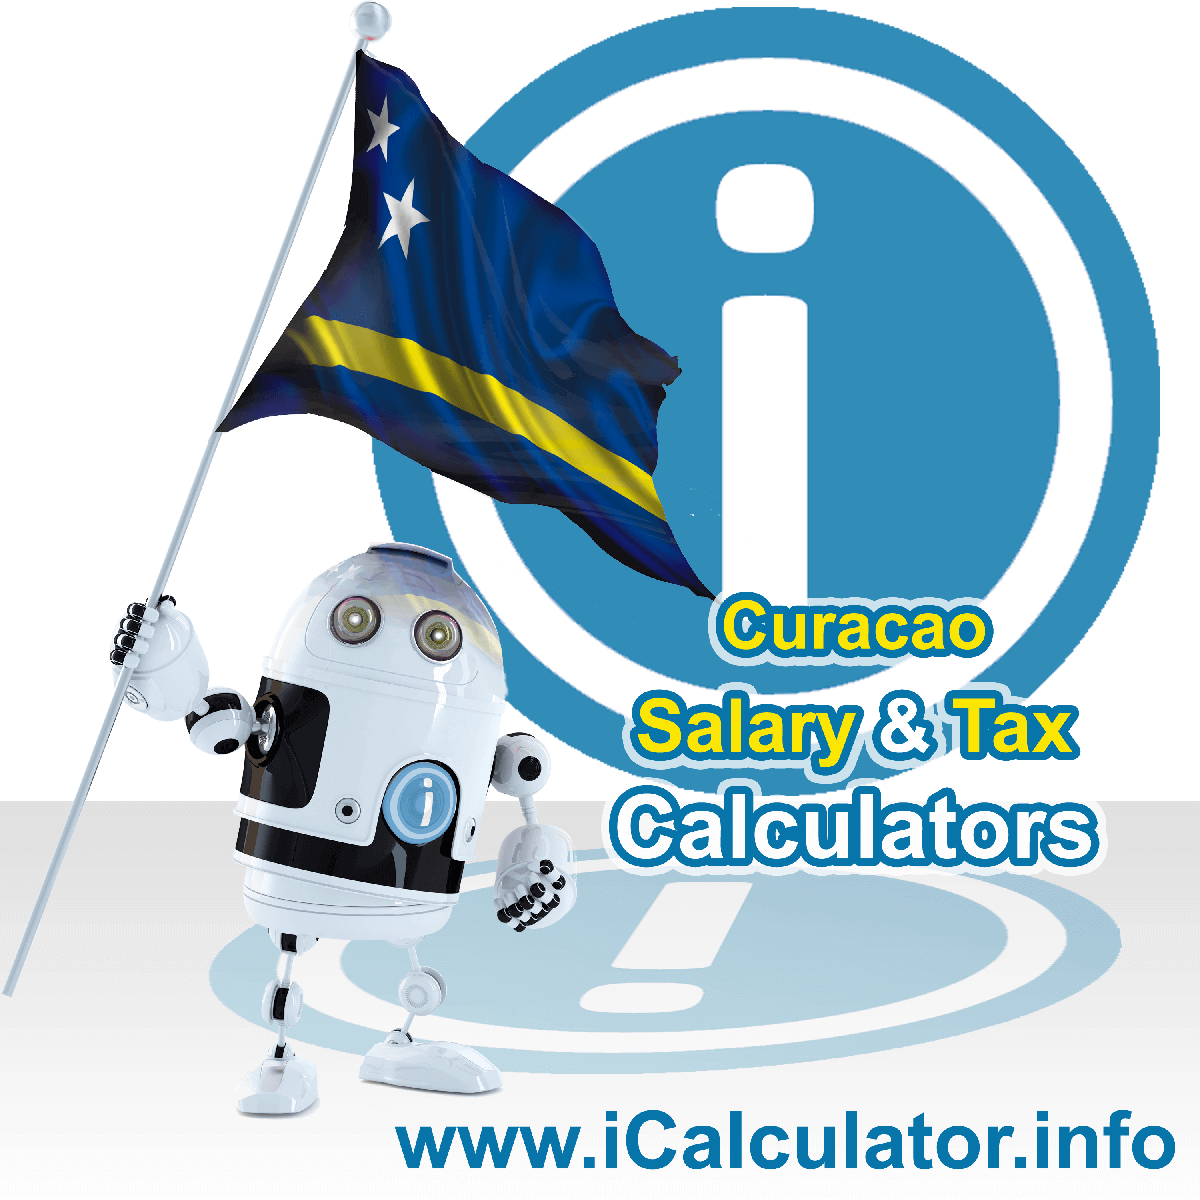 Curacao Wage Calculator. This image shows the Curacao flag and information relating to the tax formula for the Curacao Tax Calculator